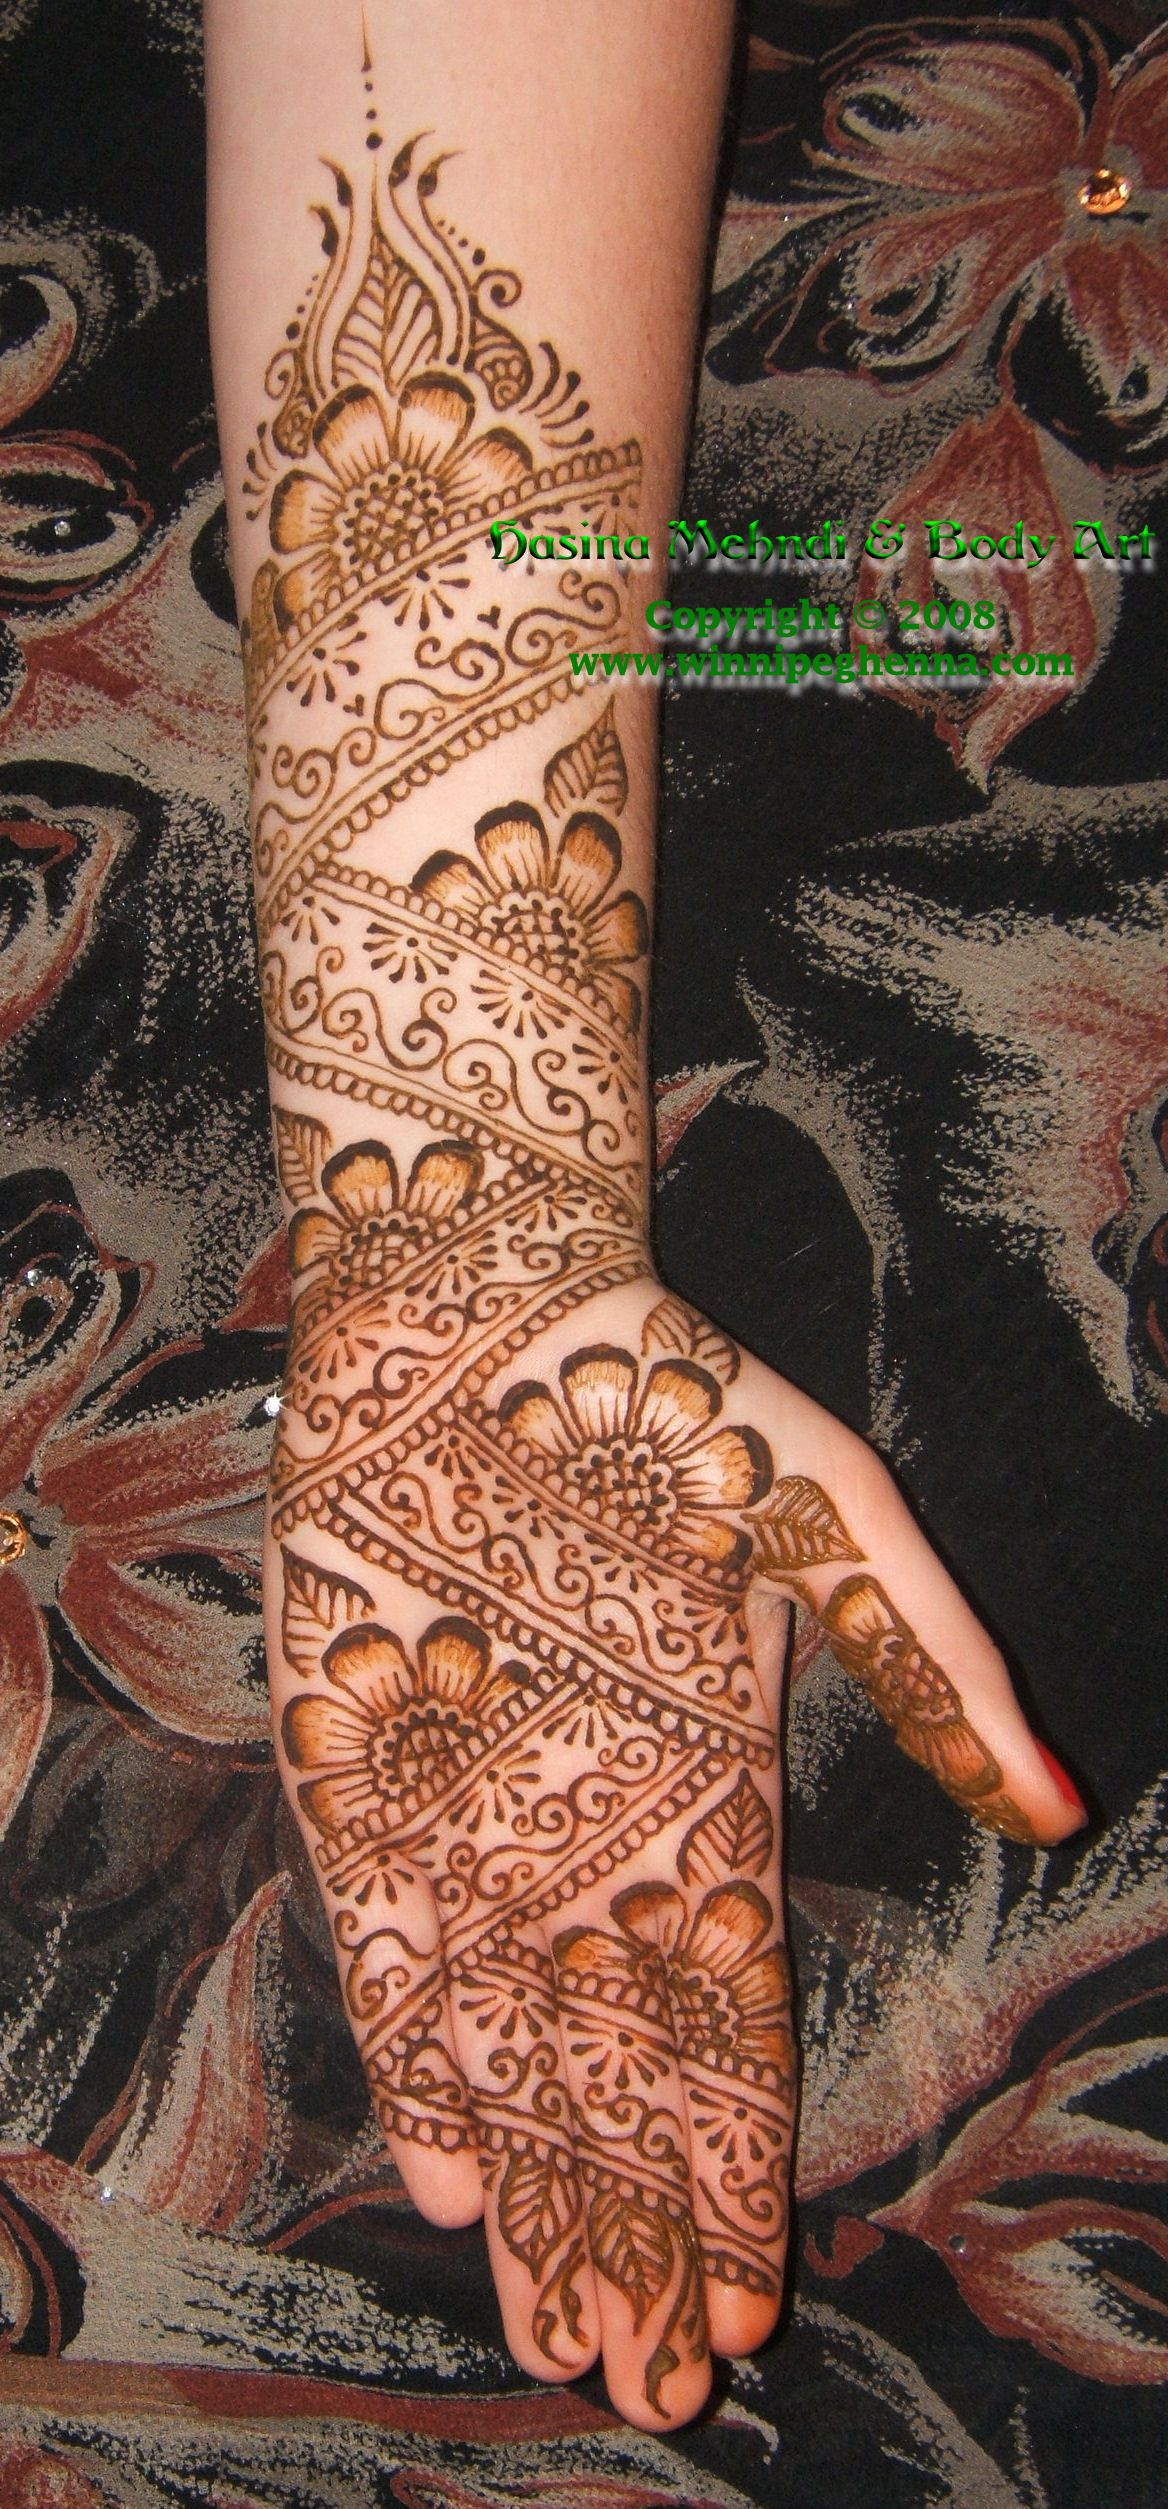 Bridal mehndi / henna designs 2 - Winnipeg Henna by Hasina Mehndi & Body Art